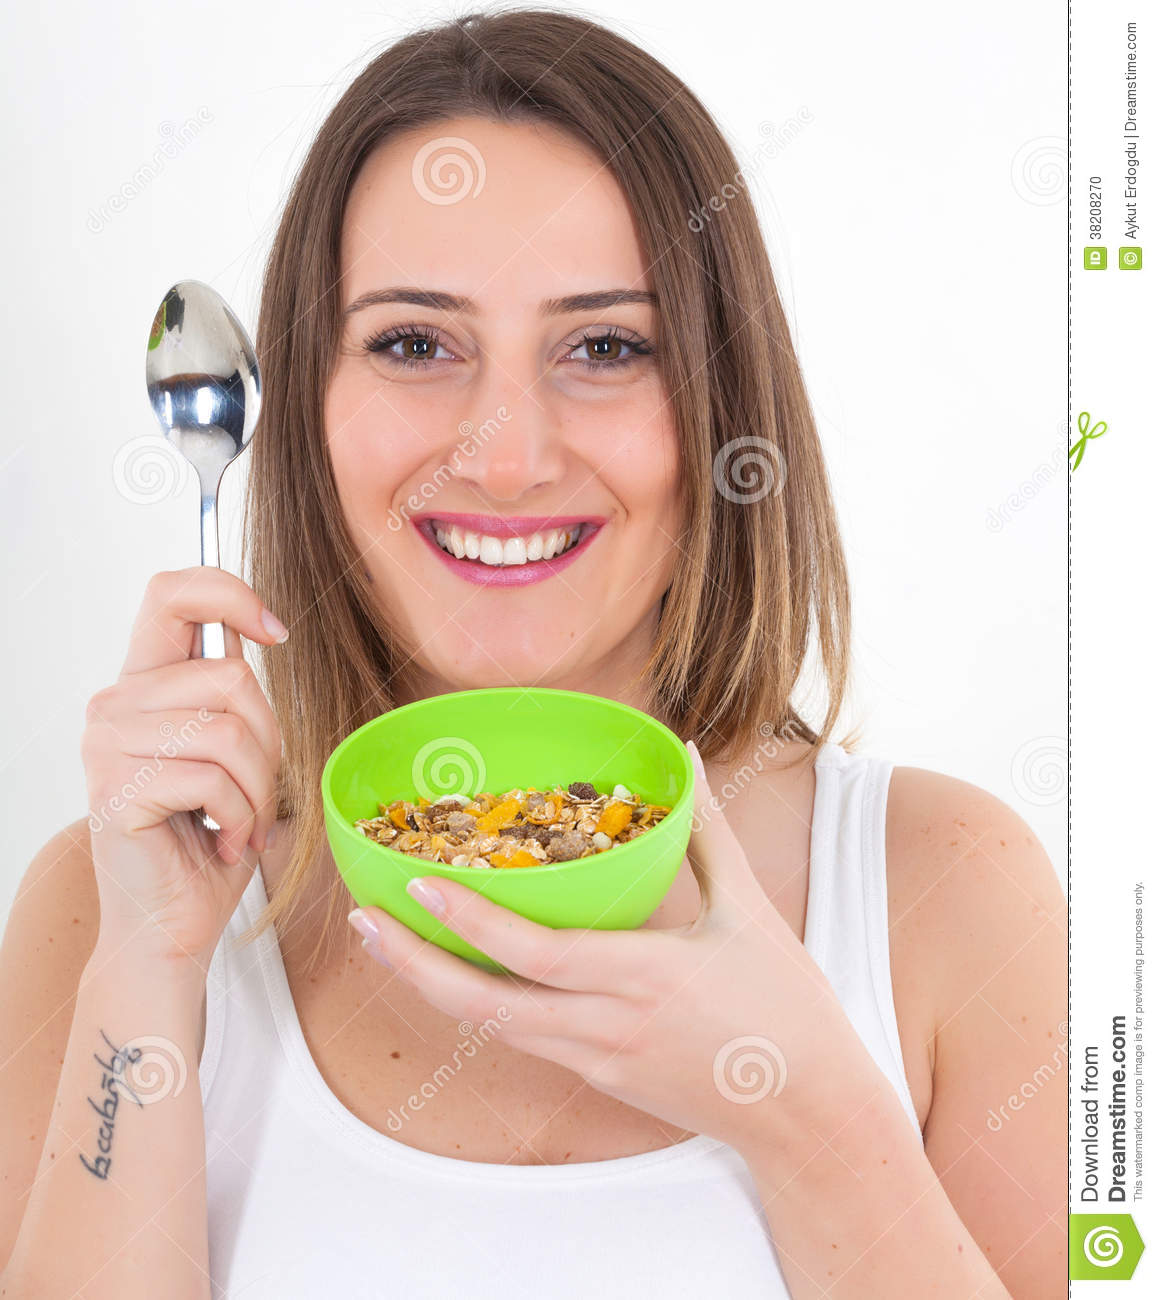 healthy-woman-eating-cereal-38208270.jpg